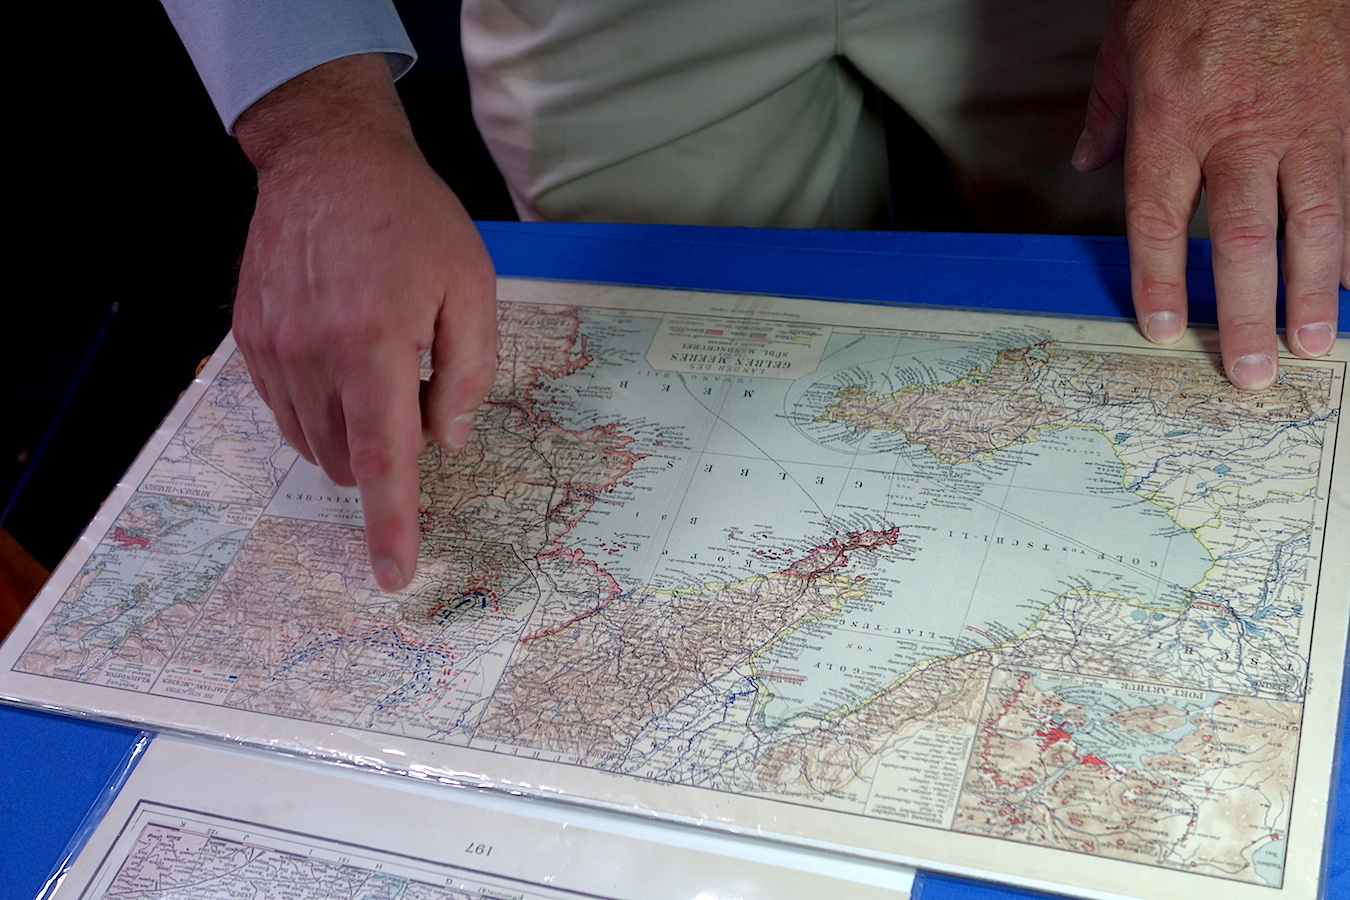 Craig Flinner of Craig Flinner Gallery shows Thompson the battle lines on an antique atlas map of northeast Asia. Click on the image for a larger view.